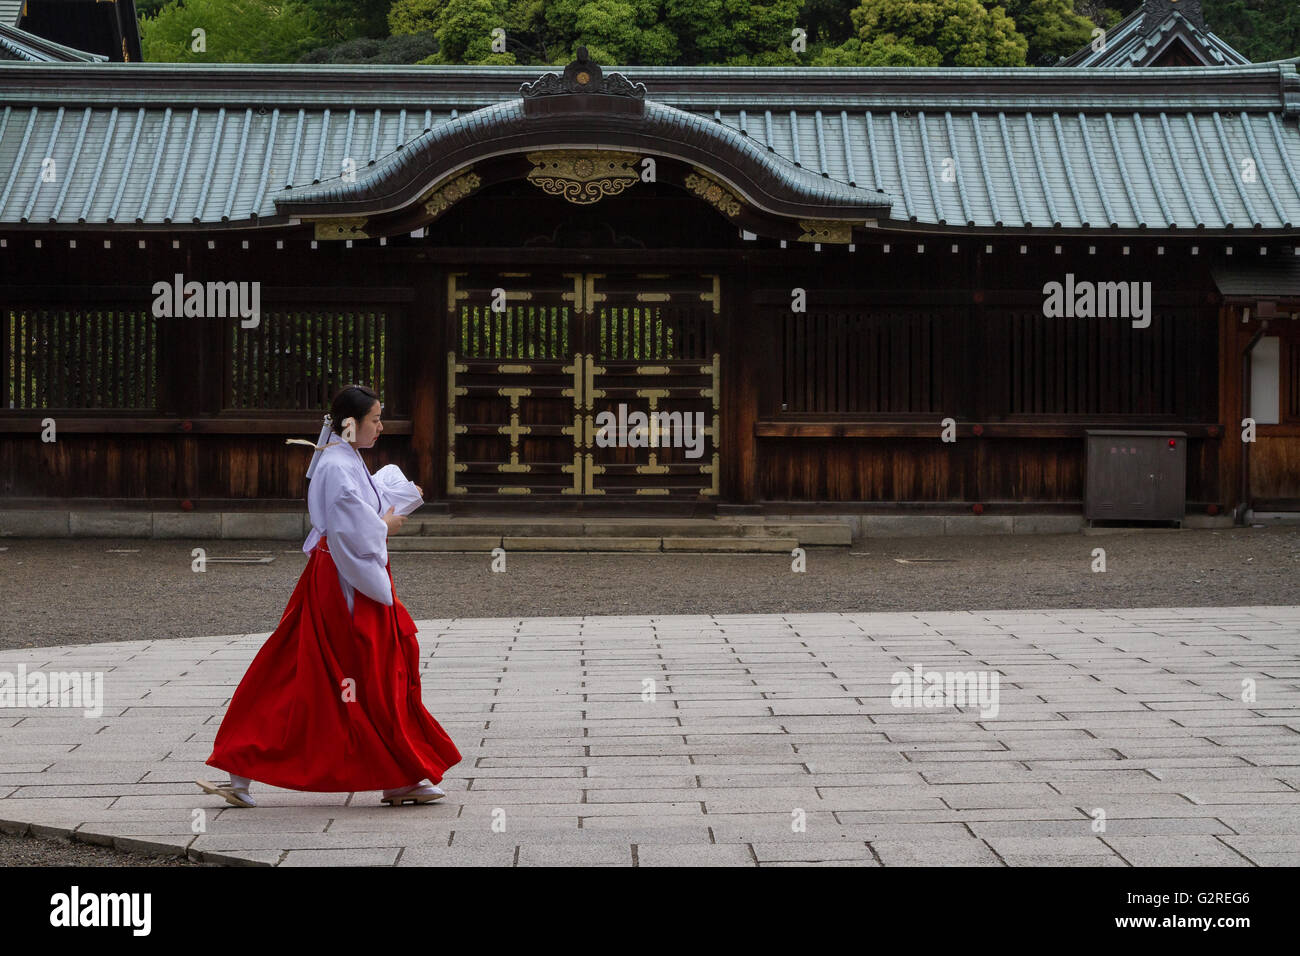 A shrine maiden in red and white robes crosses a courtyard at the controversial Yasukuni Shrine in Kudanshita, Tokyo, - Stock Image